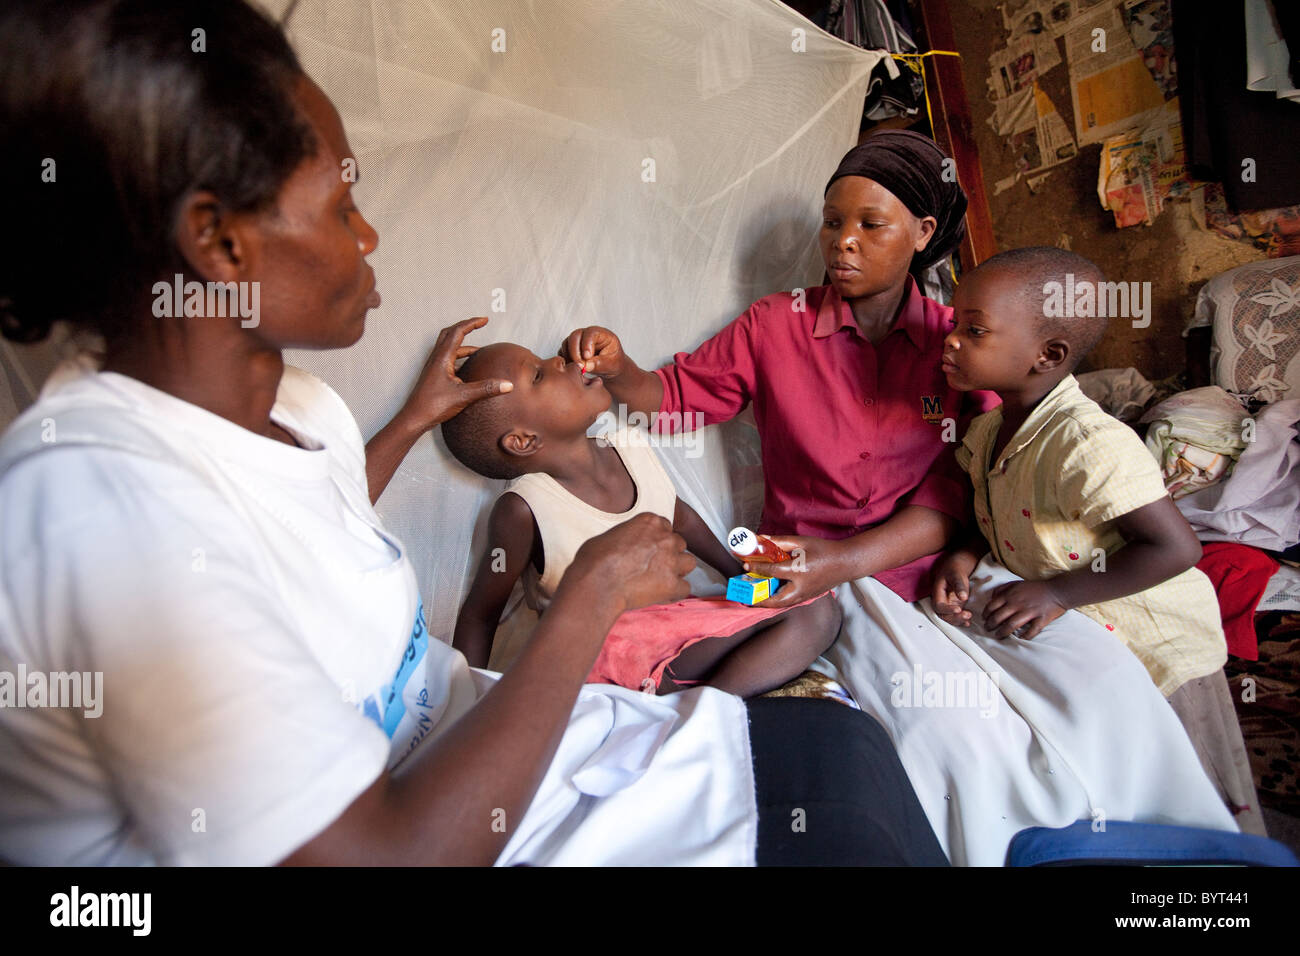 A community health care outreach worker visits an HIV positive family in a slum in Kampala, Uganda, East Africa. - Stock Image